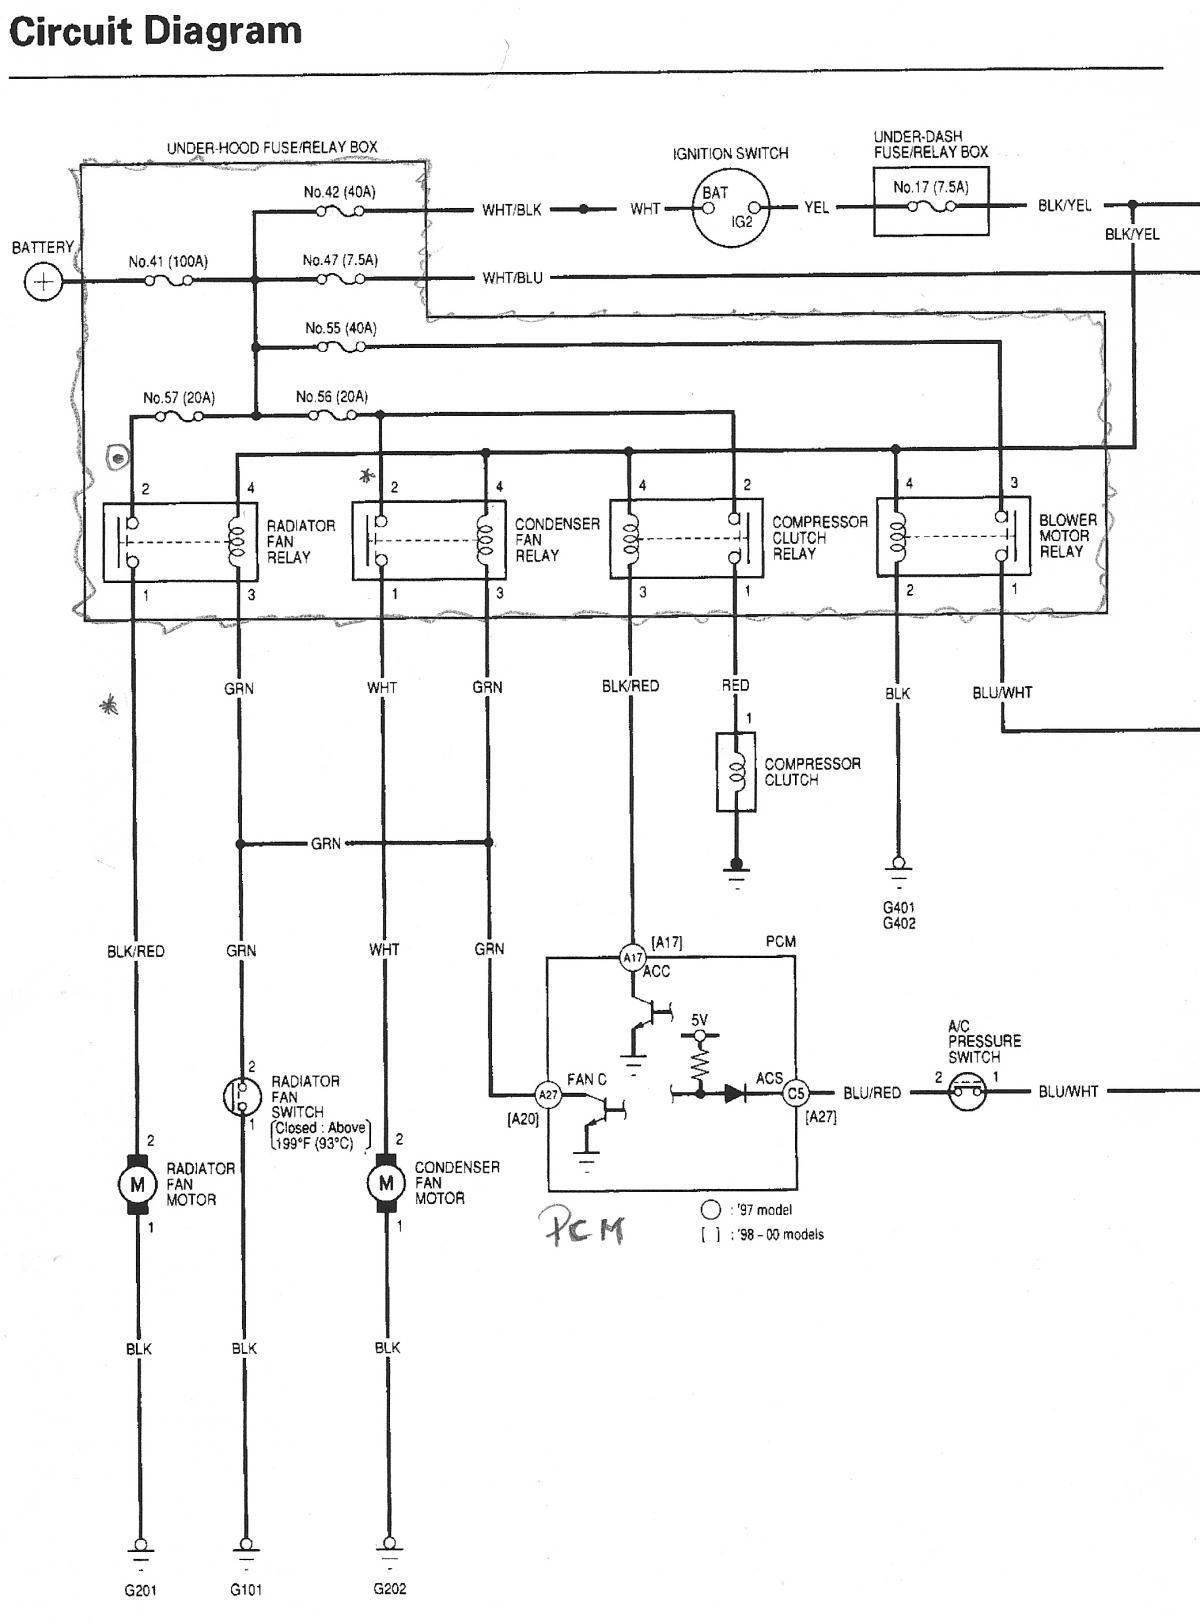 hight resolution of honda civic cooling system diagram moreover 94 honda accord radio wiring diagram honda civic cooling system diagram 1996 honda accord